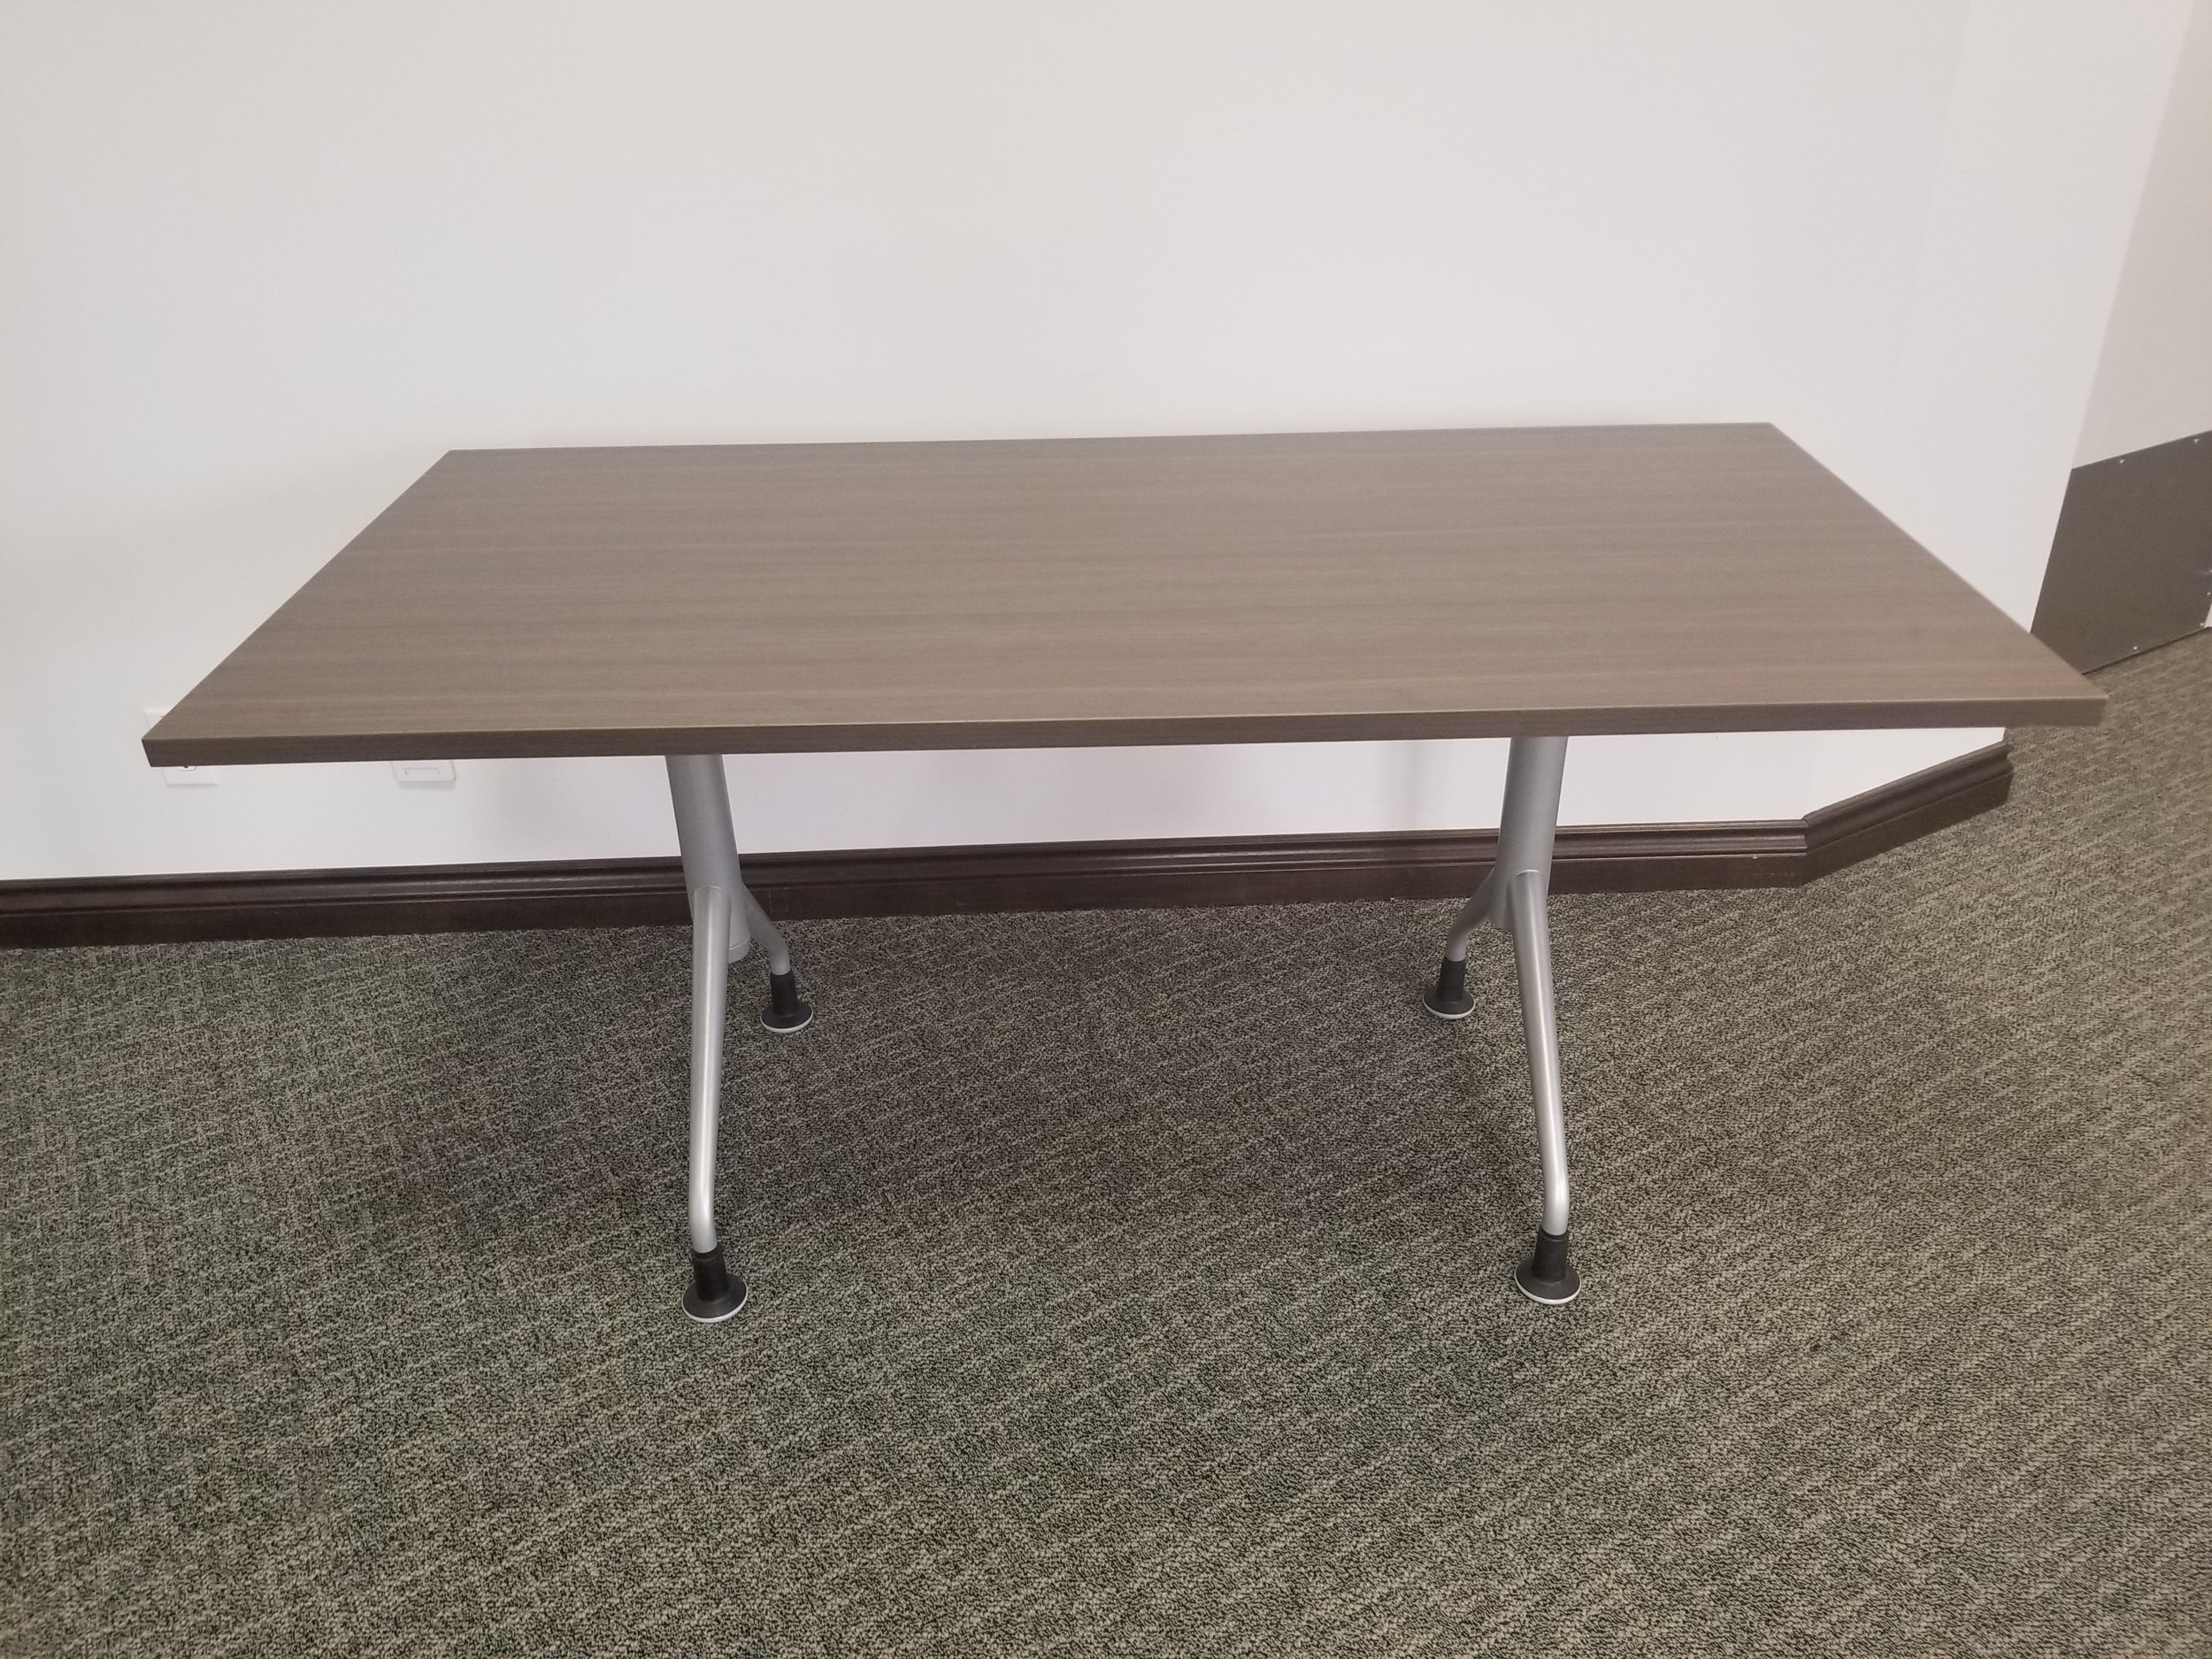 "30"" x 60"" table  - dark brown laminate finish"